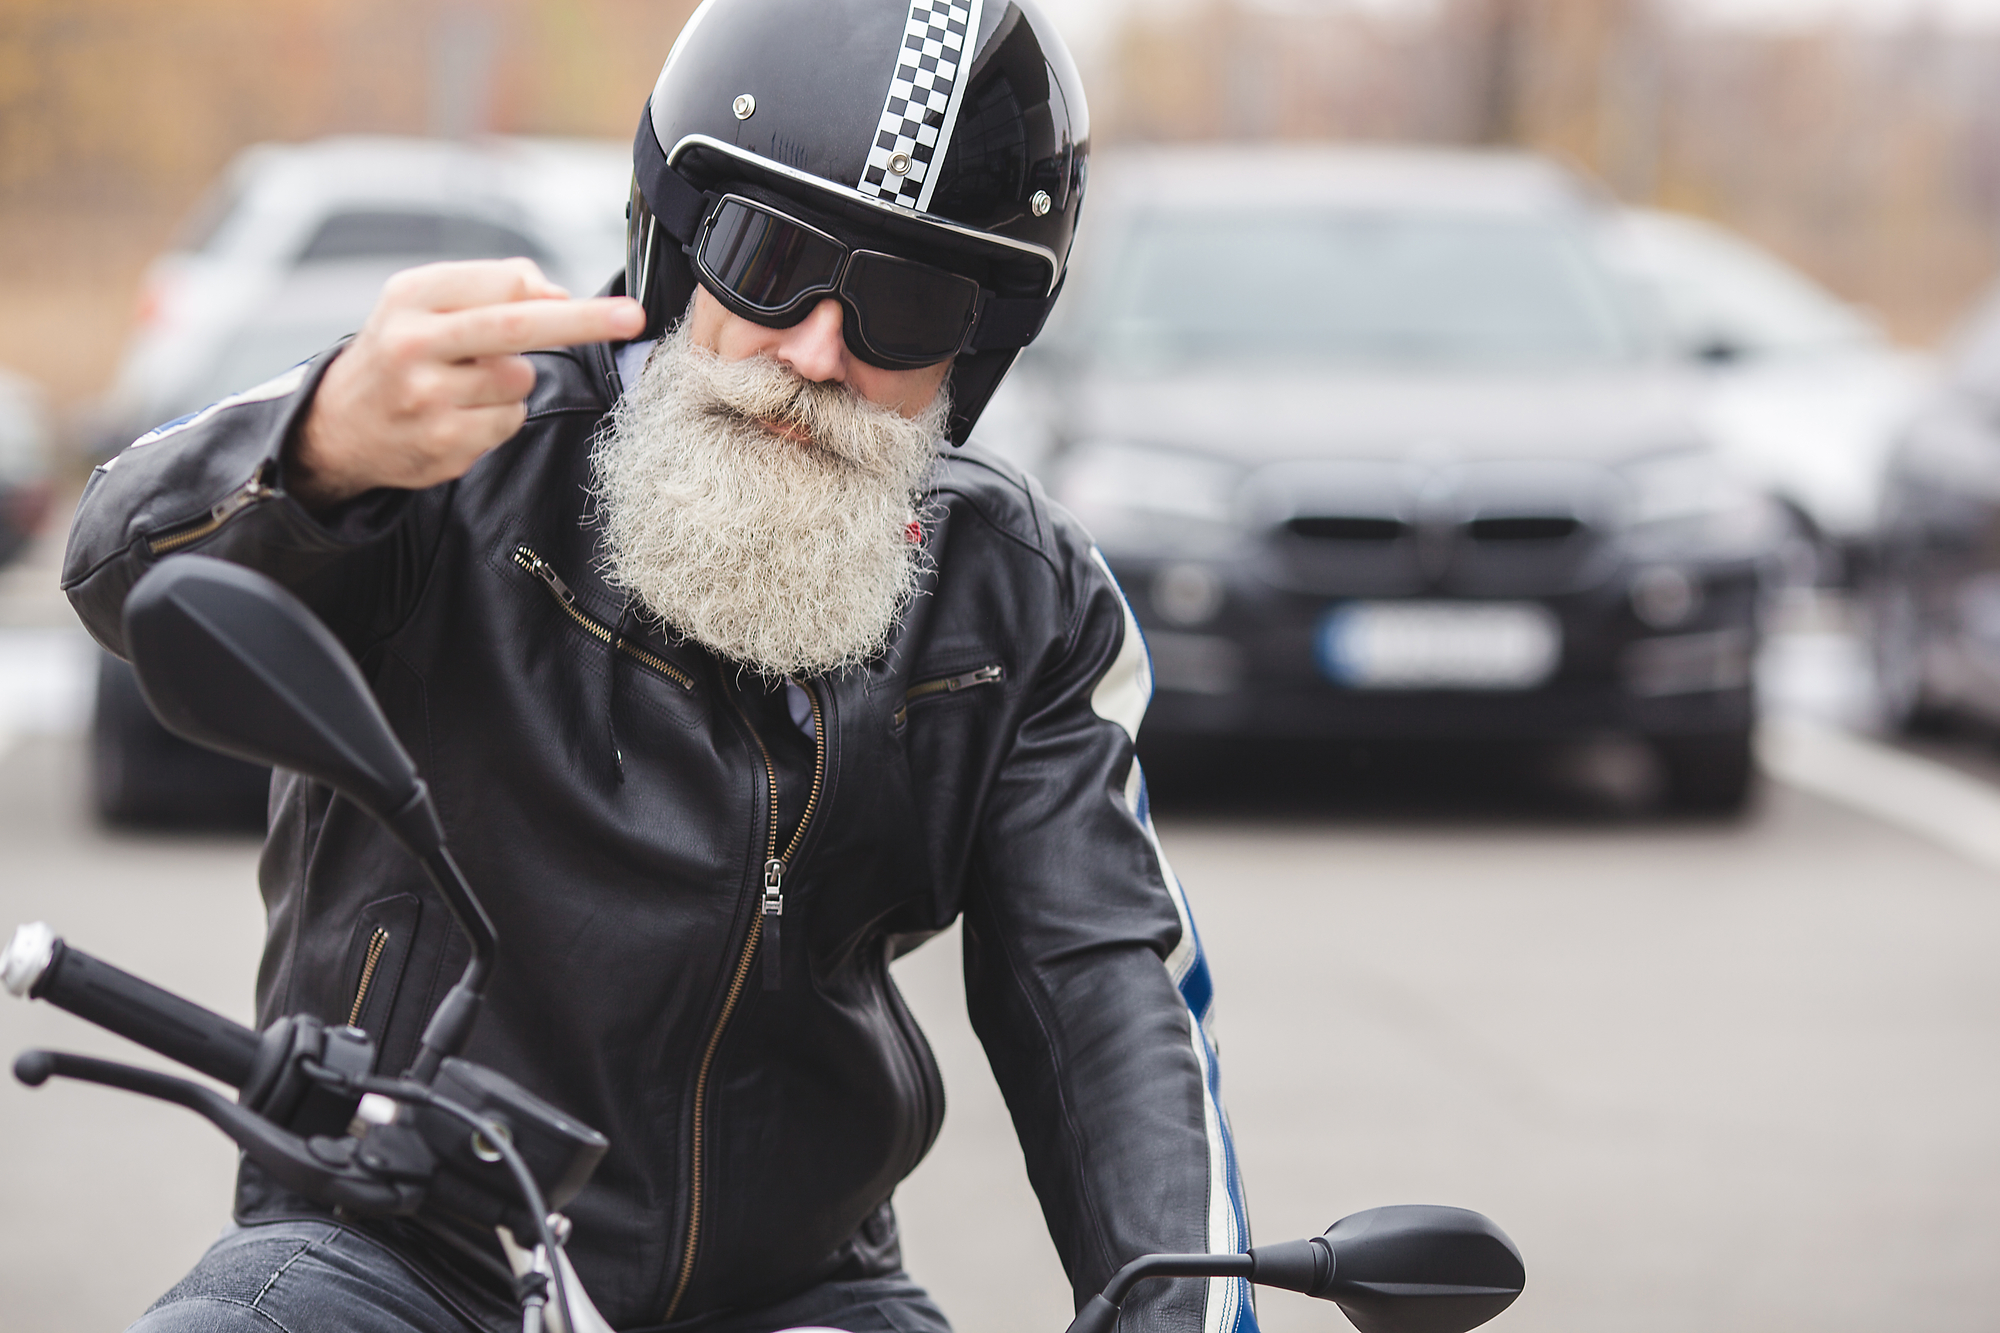 No gasoline? We quit, say 31% of UK motorcyclists in a new survey from the Motorcycle Action Group